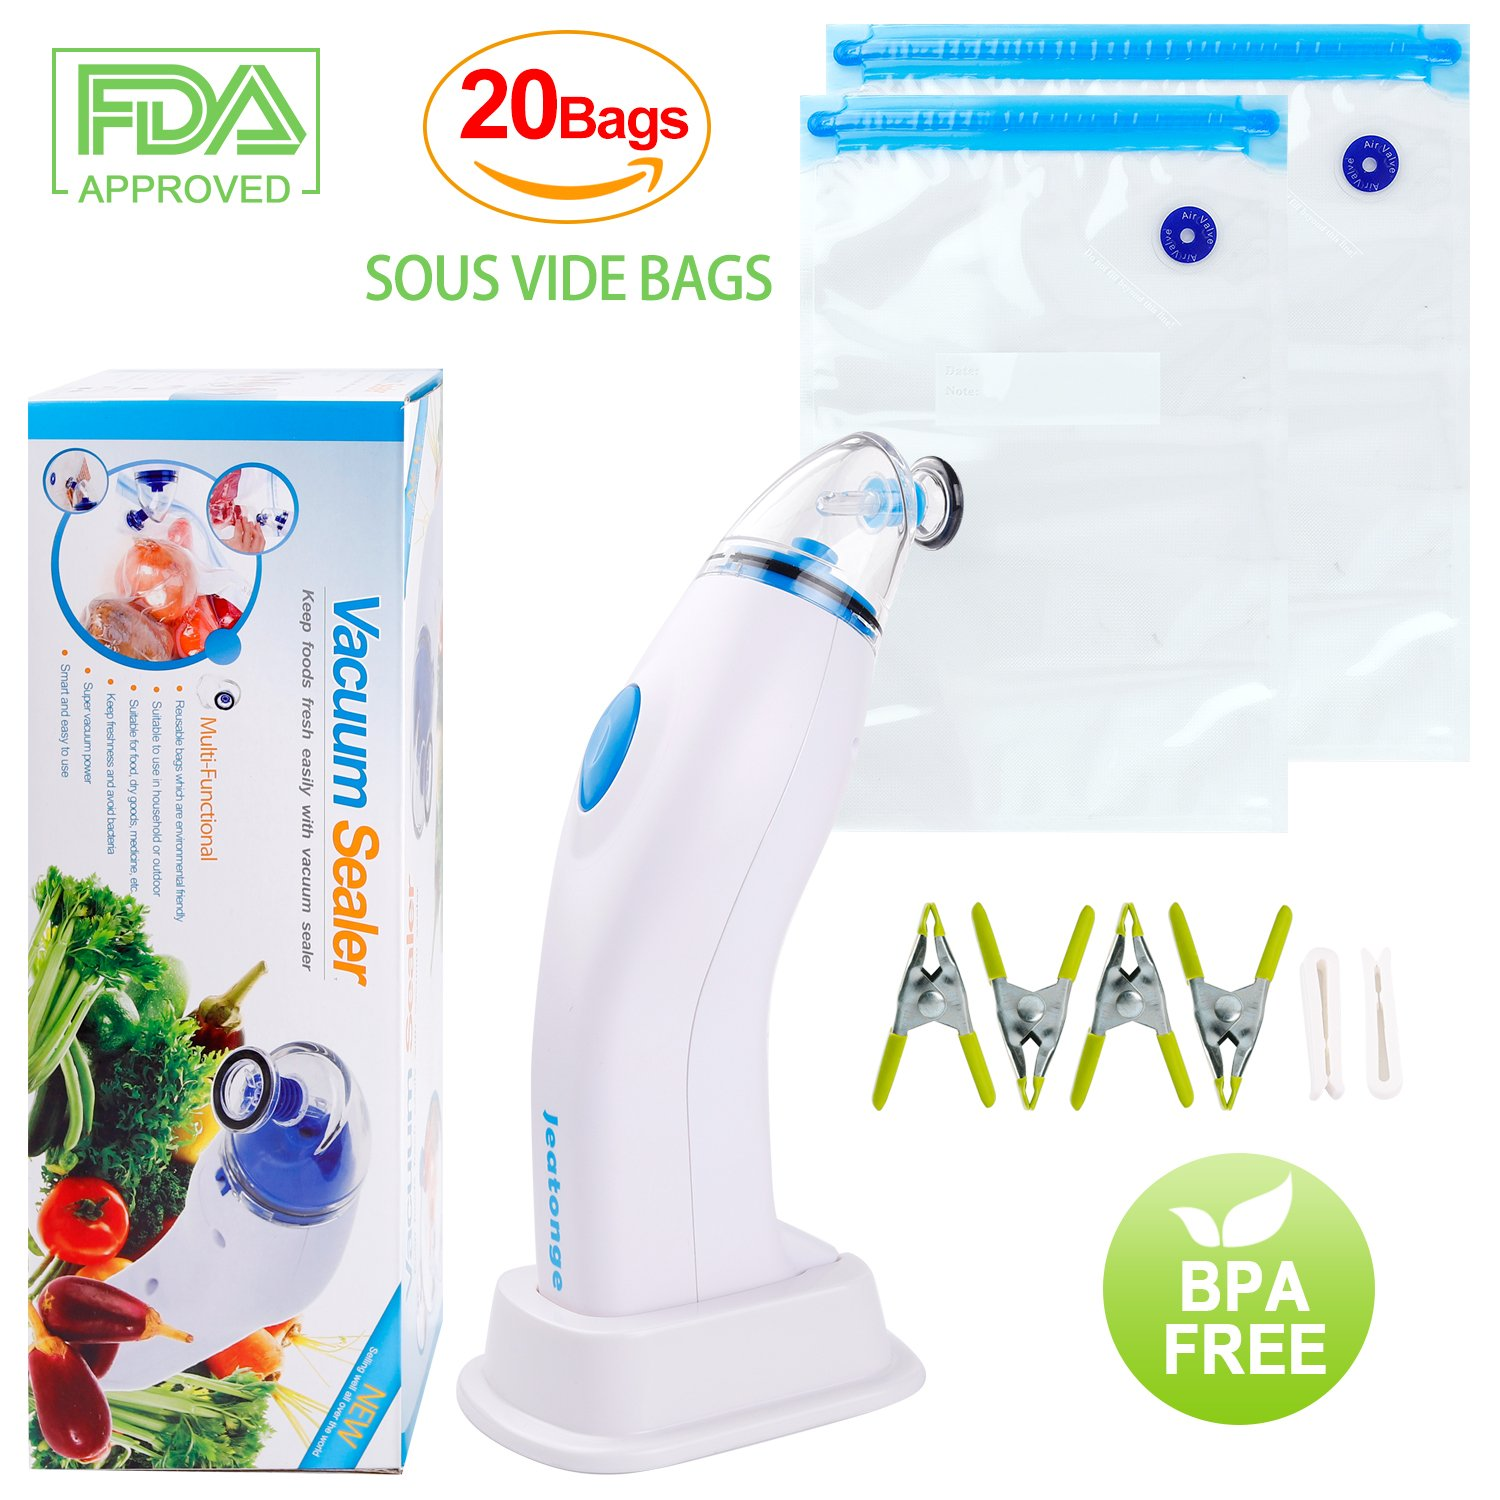 Jeatonge Sous Vide Bags and Power-Driven Pmup 20 Reuseble Bags Easy to Use (Electric Pump + 20 Bags) by Jeatonge (Image #1)